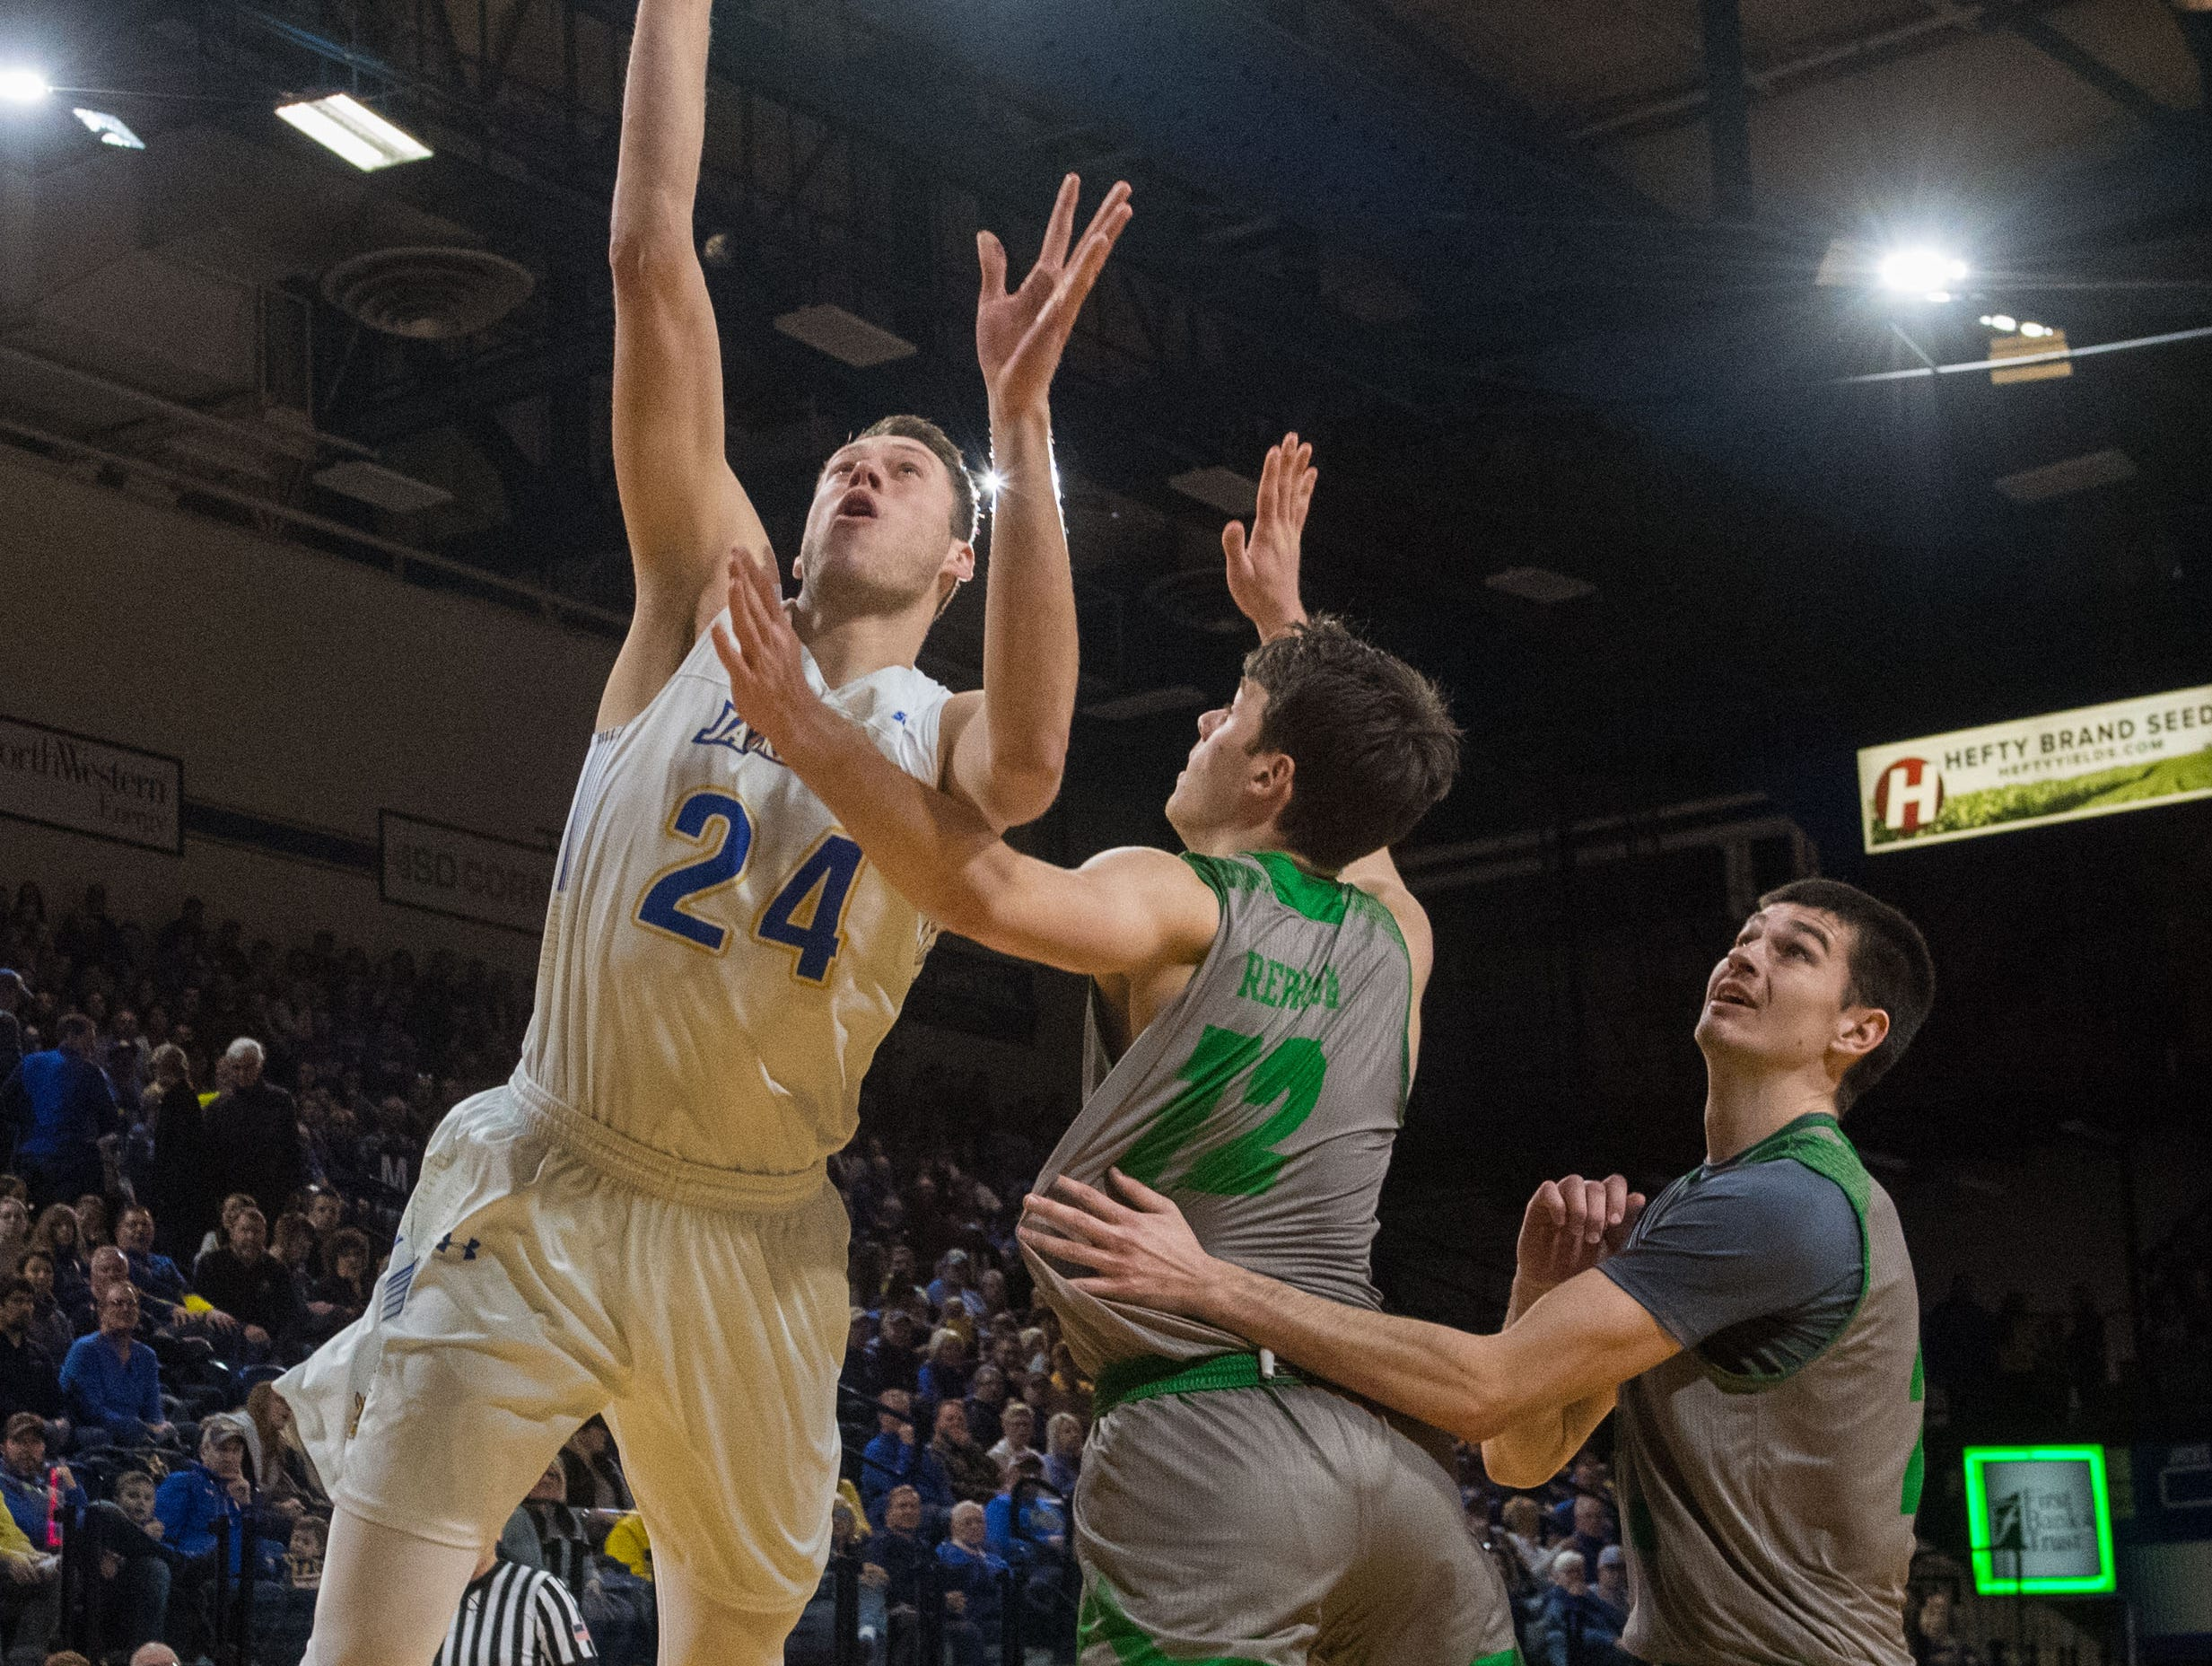 South Dakota State's Mike Daum (24) shoots the ball during a game against North Dakota in Brookings, S.D., Saturday, Feb. 9, 2019.